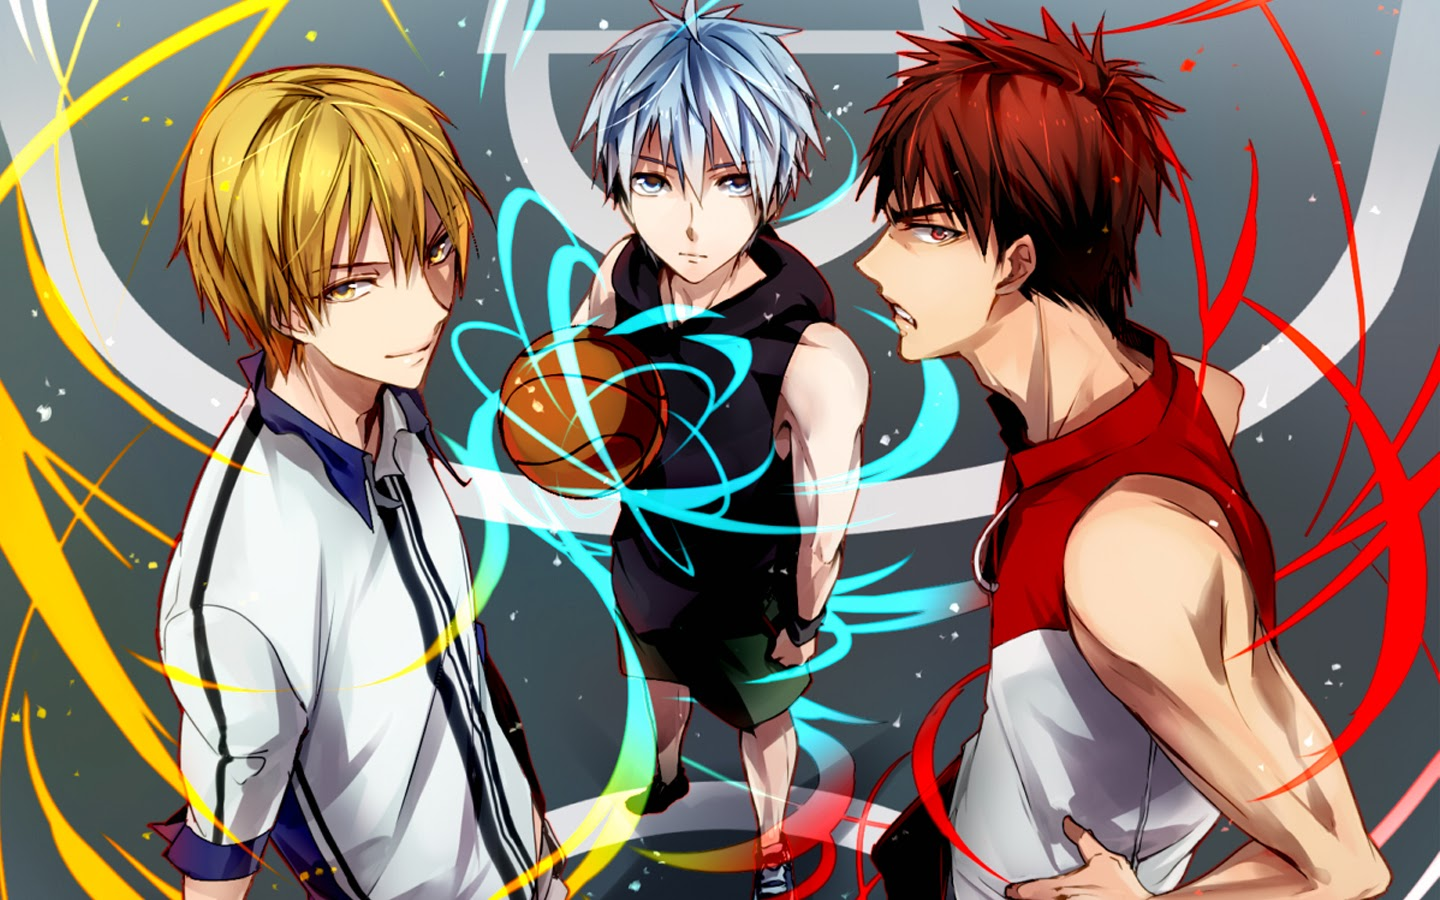 Kuroko no basket wallpaper hd iphone 22 page 2 of 3 dzbc voltagebd Choice Image